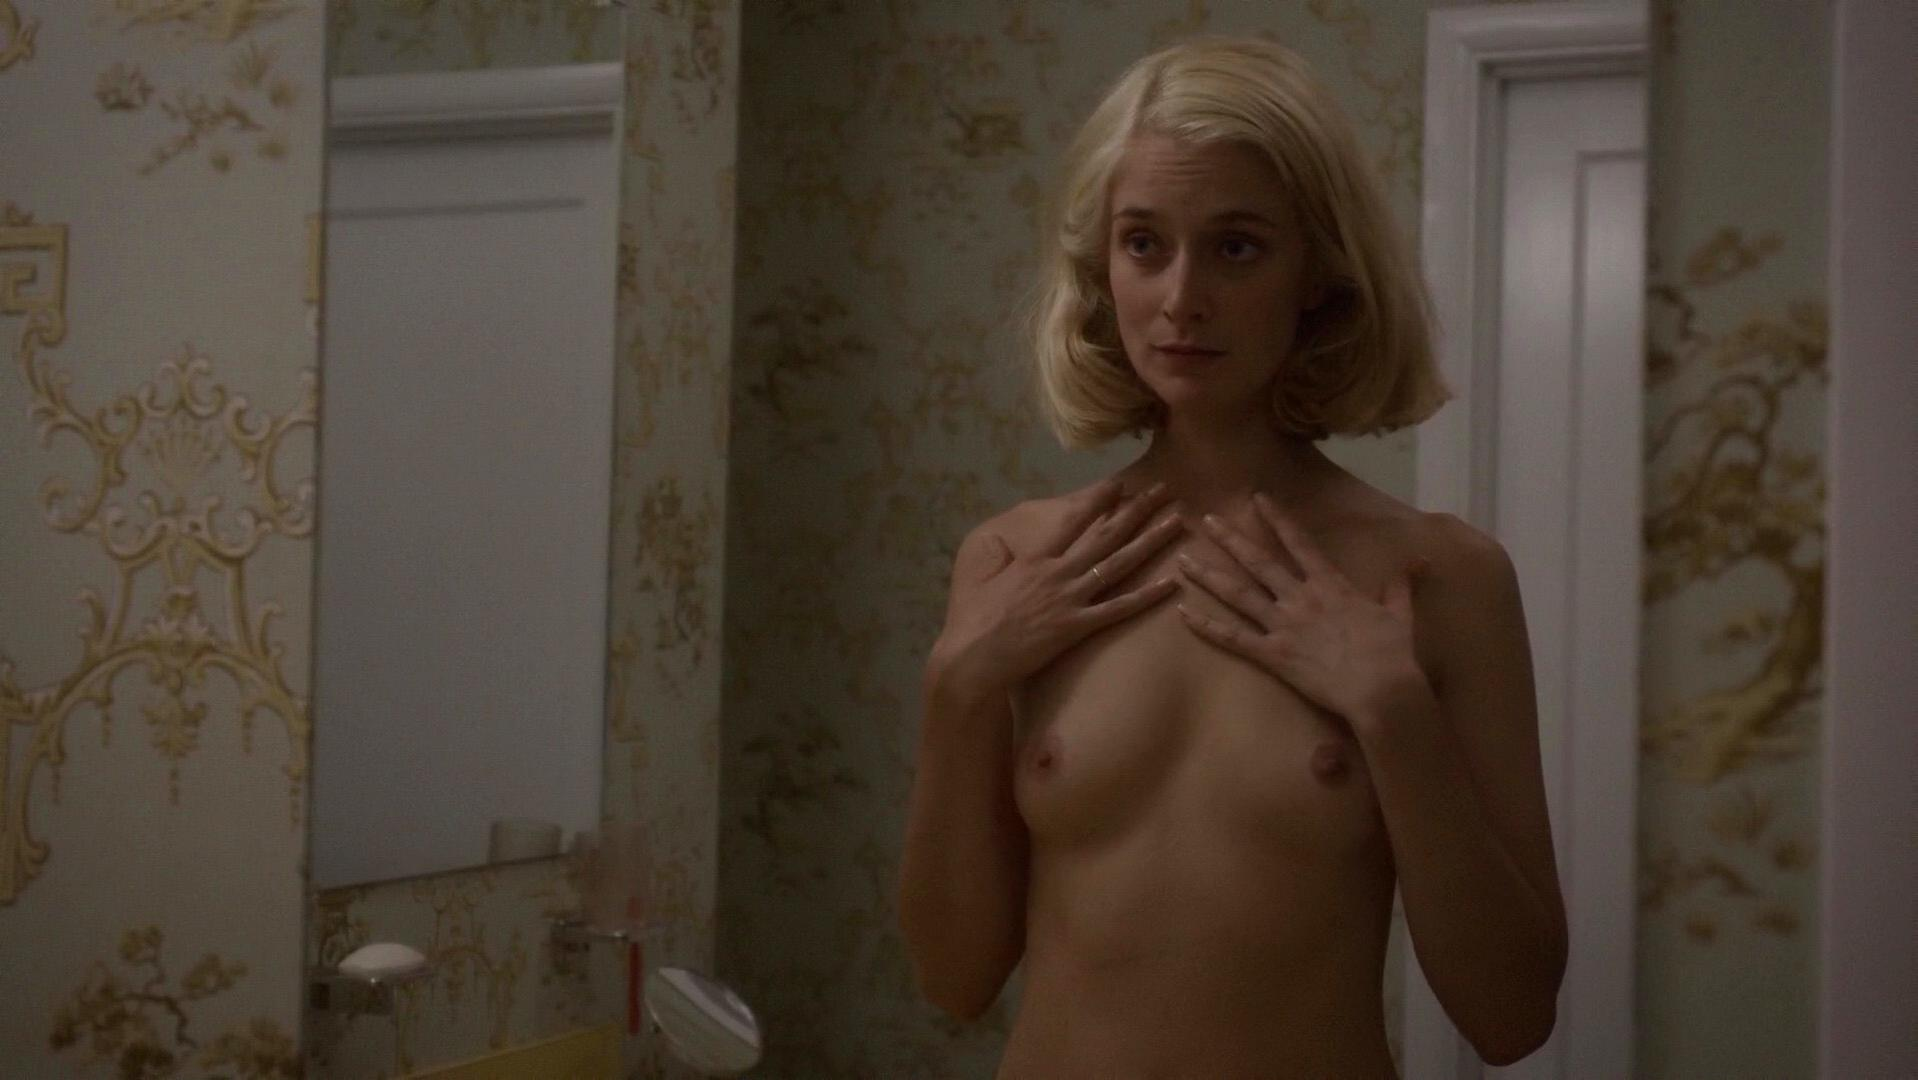 Caitlin FitzGerald nude, Betsy underwearndt nude - Masters of Sex s02e12 (2014)